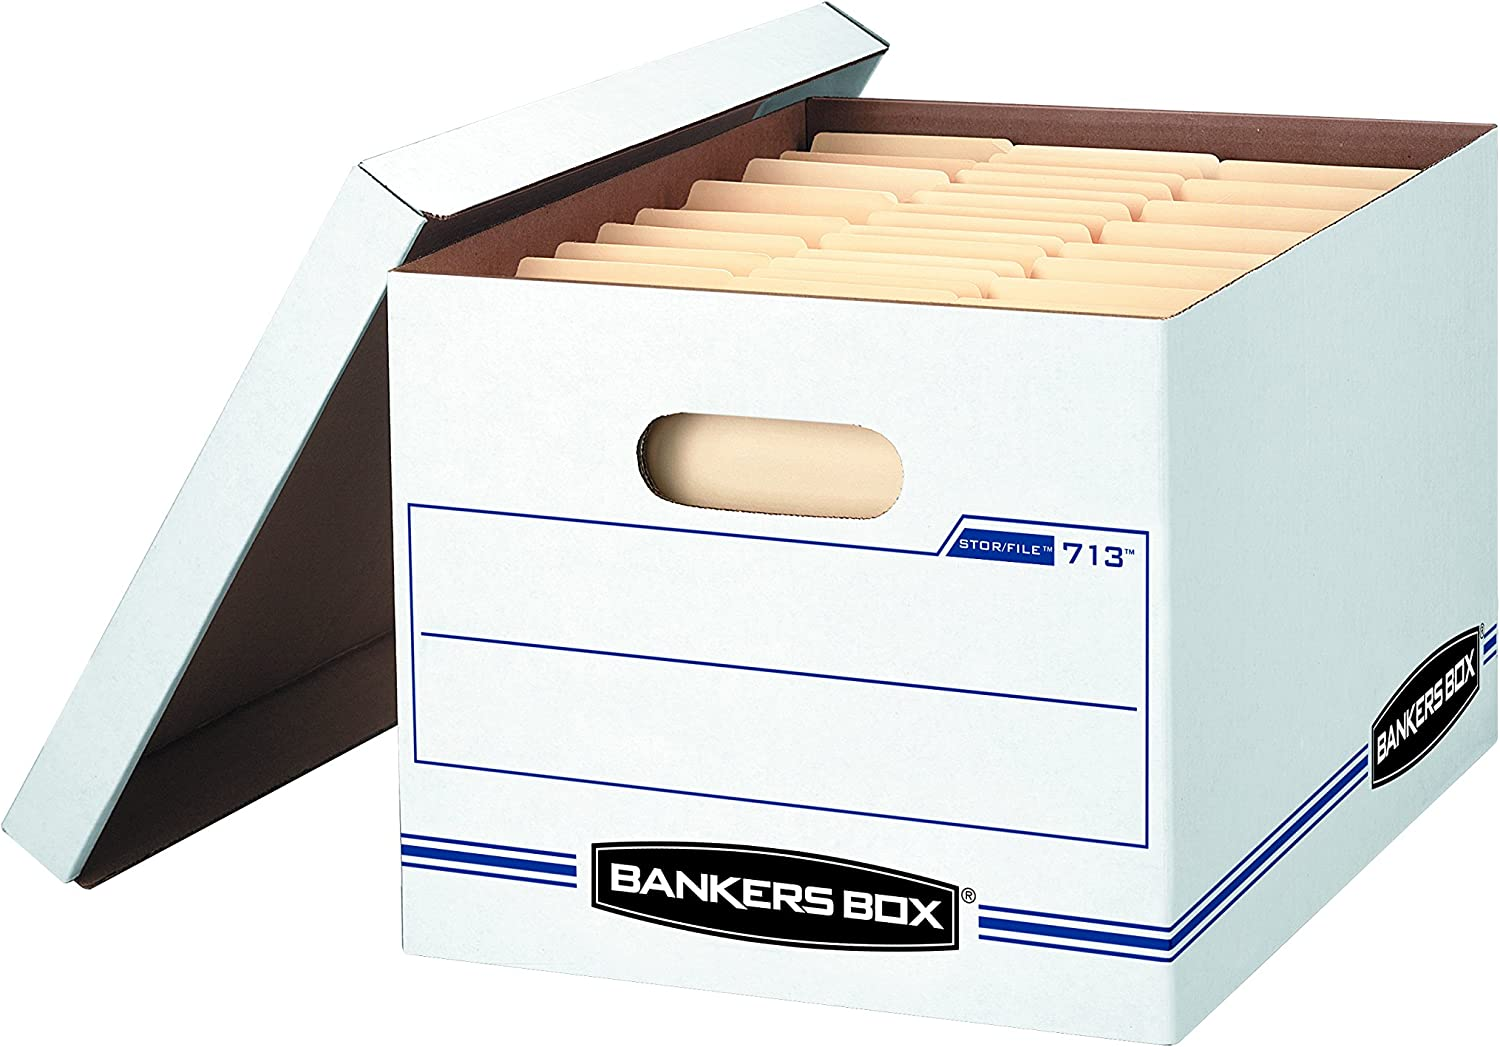 Bankers Box STOR/File Storage Boxes, Standard Set-Up, Lift-Off Lid, Letter/Legal, (0071303)